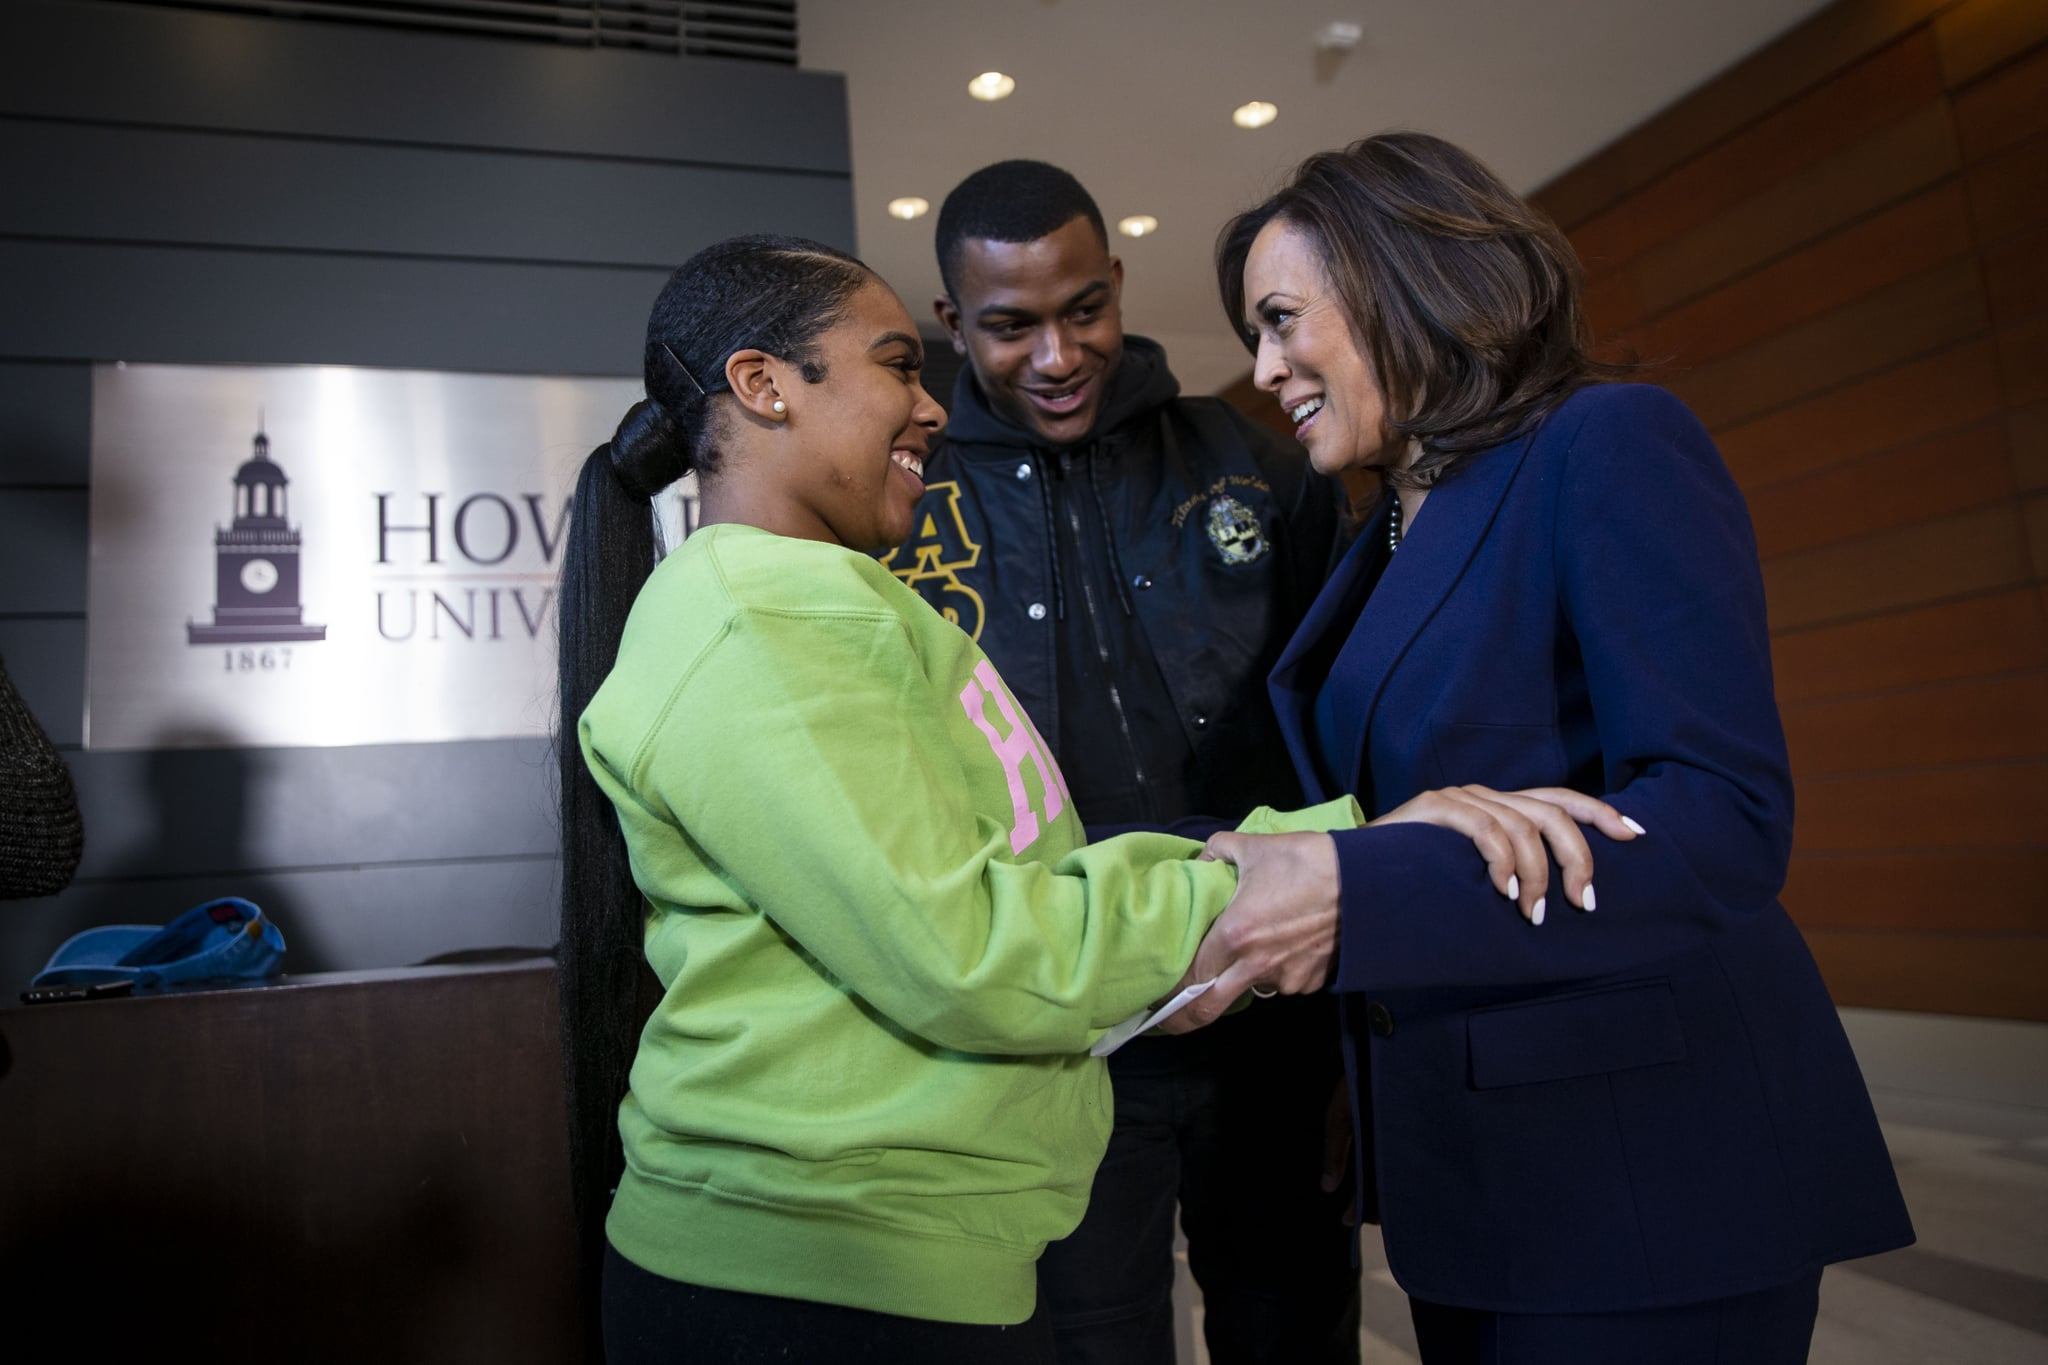 WASHINGTON, DC - JANUARY 21: Sen. Kamala Harris (D-CA) speaks to Amos Jackson III, Executive President of the Howard University Student Association, and Mara Peoples, Executive Vice President, after announcing her candidacy for President of the United States, at Howard University, her alma mater, on January 21, 2019 in Washington, DC. Harris is the first African-American woman to announce a run for the White House in 2020.  (Photo by Al Drago/Getty Images)